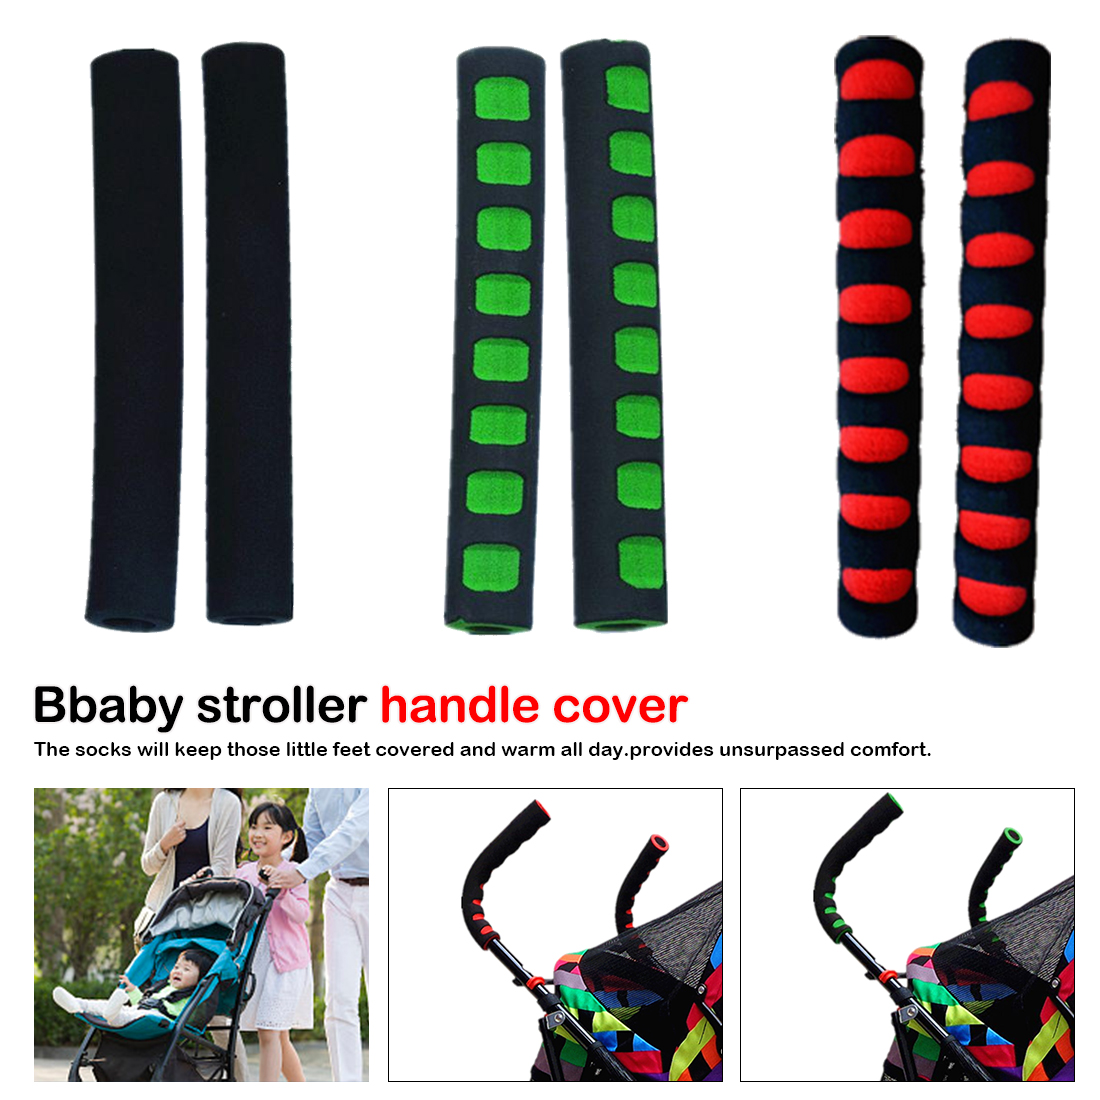 2pcs Baby Stroller Handle Cover Push Tube Cart Sleeve EVA Foam Covers Armrest Soft Protector Grips Accessories High Quality(China)